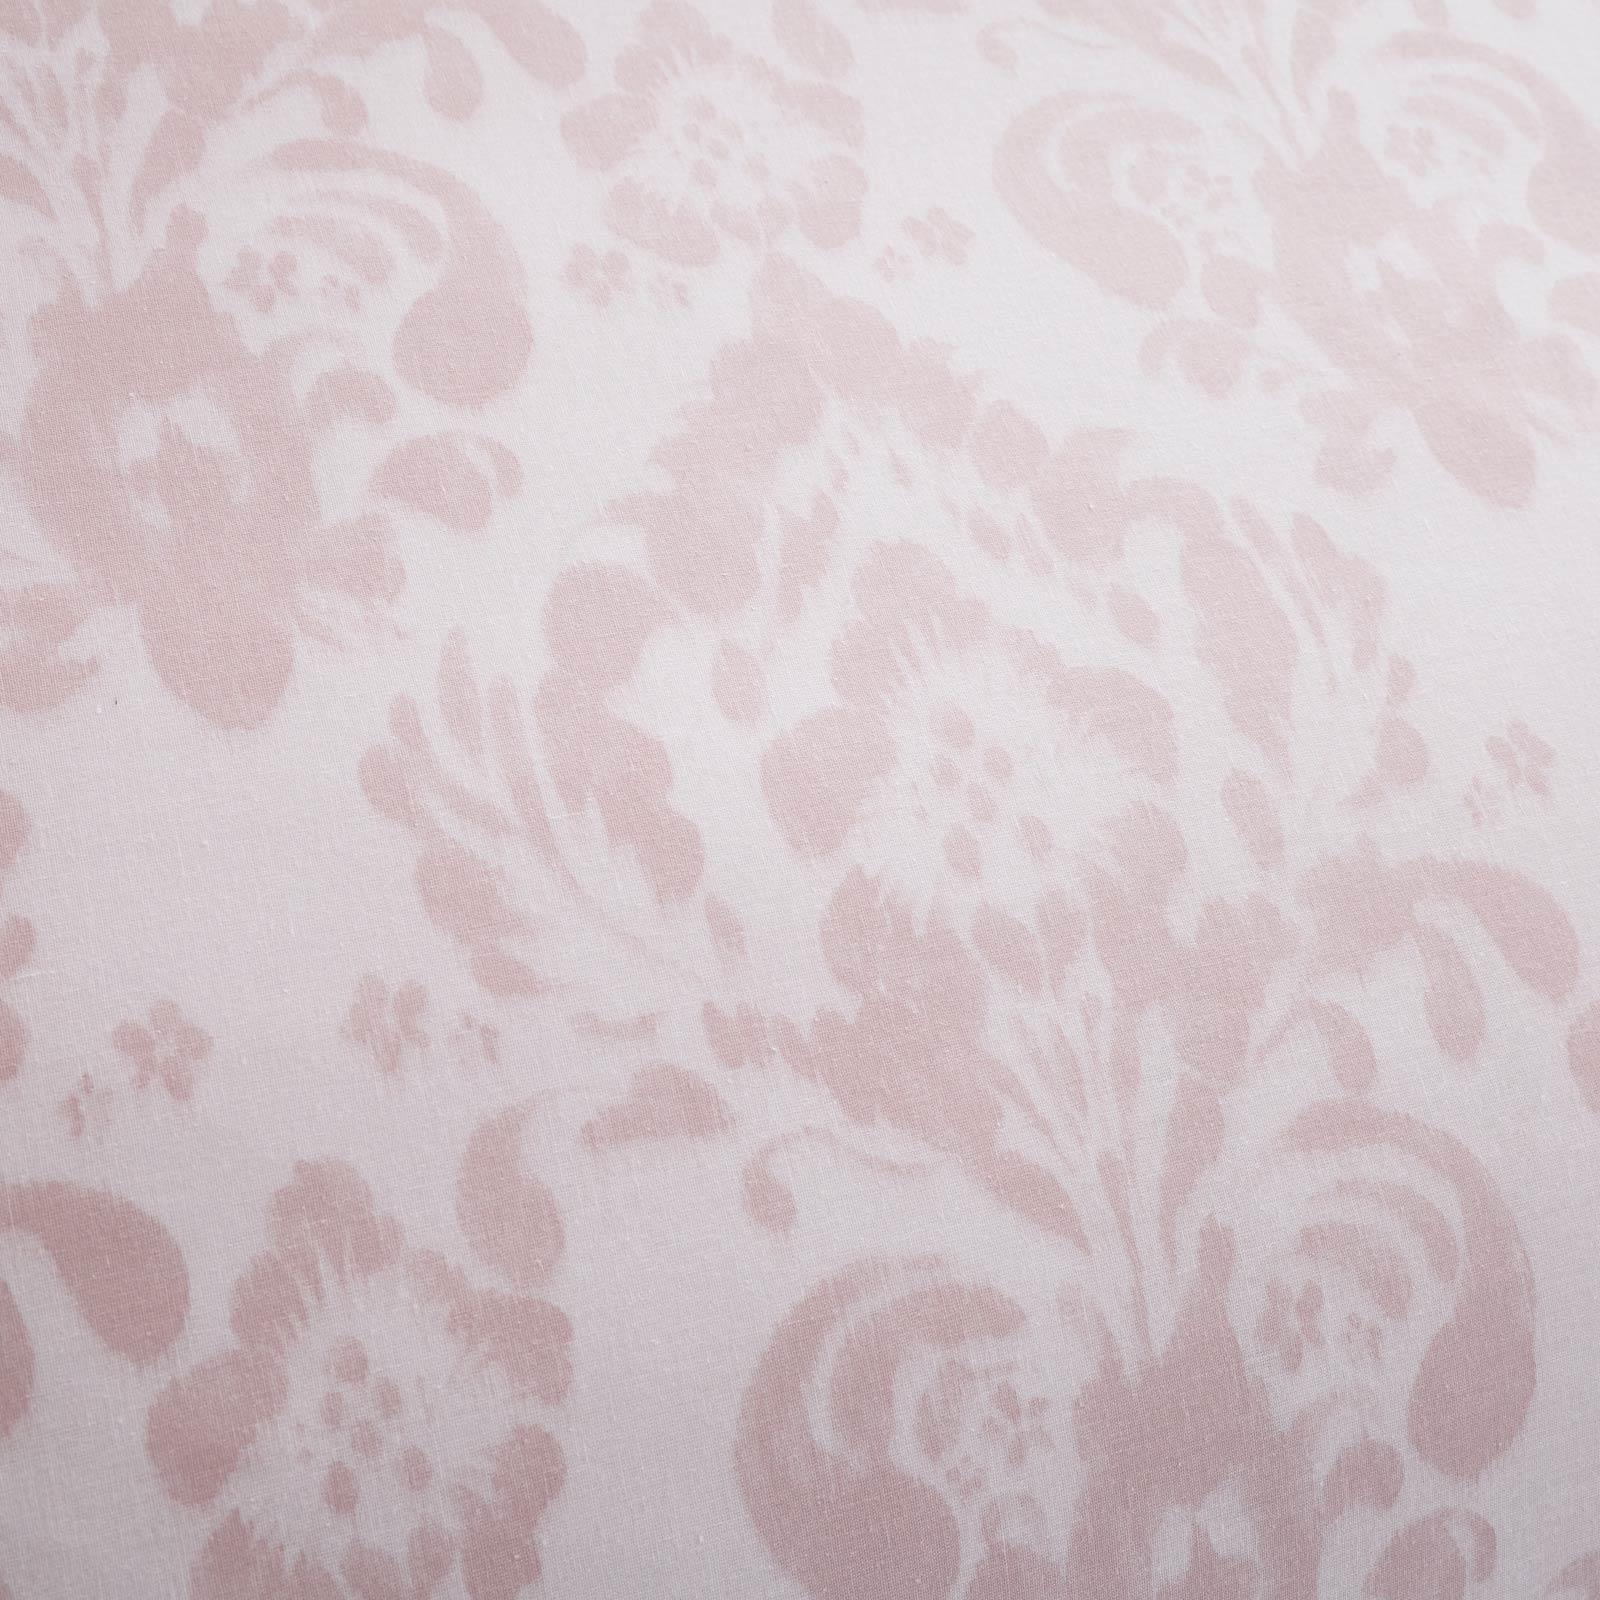 thumbnail 13 - Catherine Lansfield Damask Blush Duvet Covers Pink Grey Quilt Cover Bedding Sets